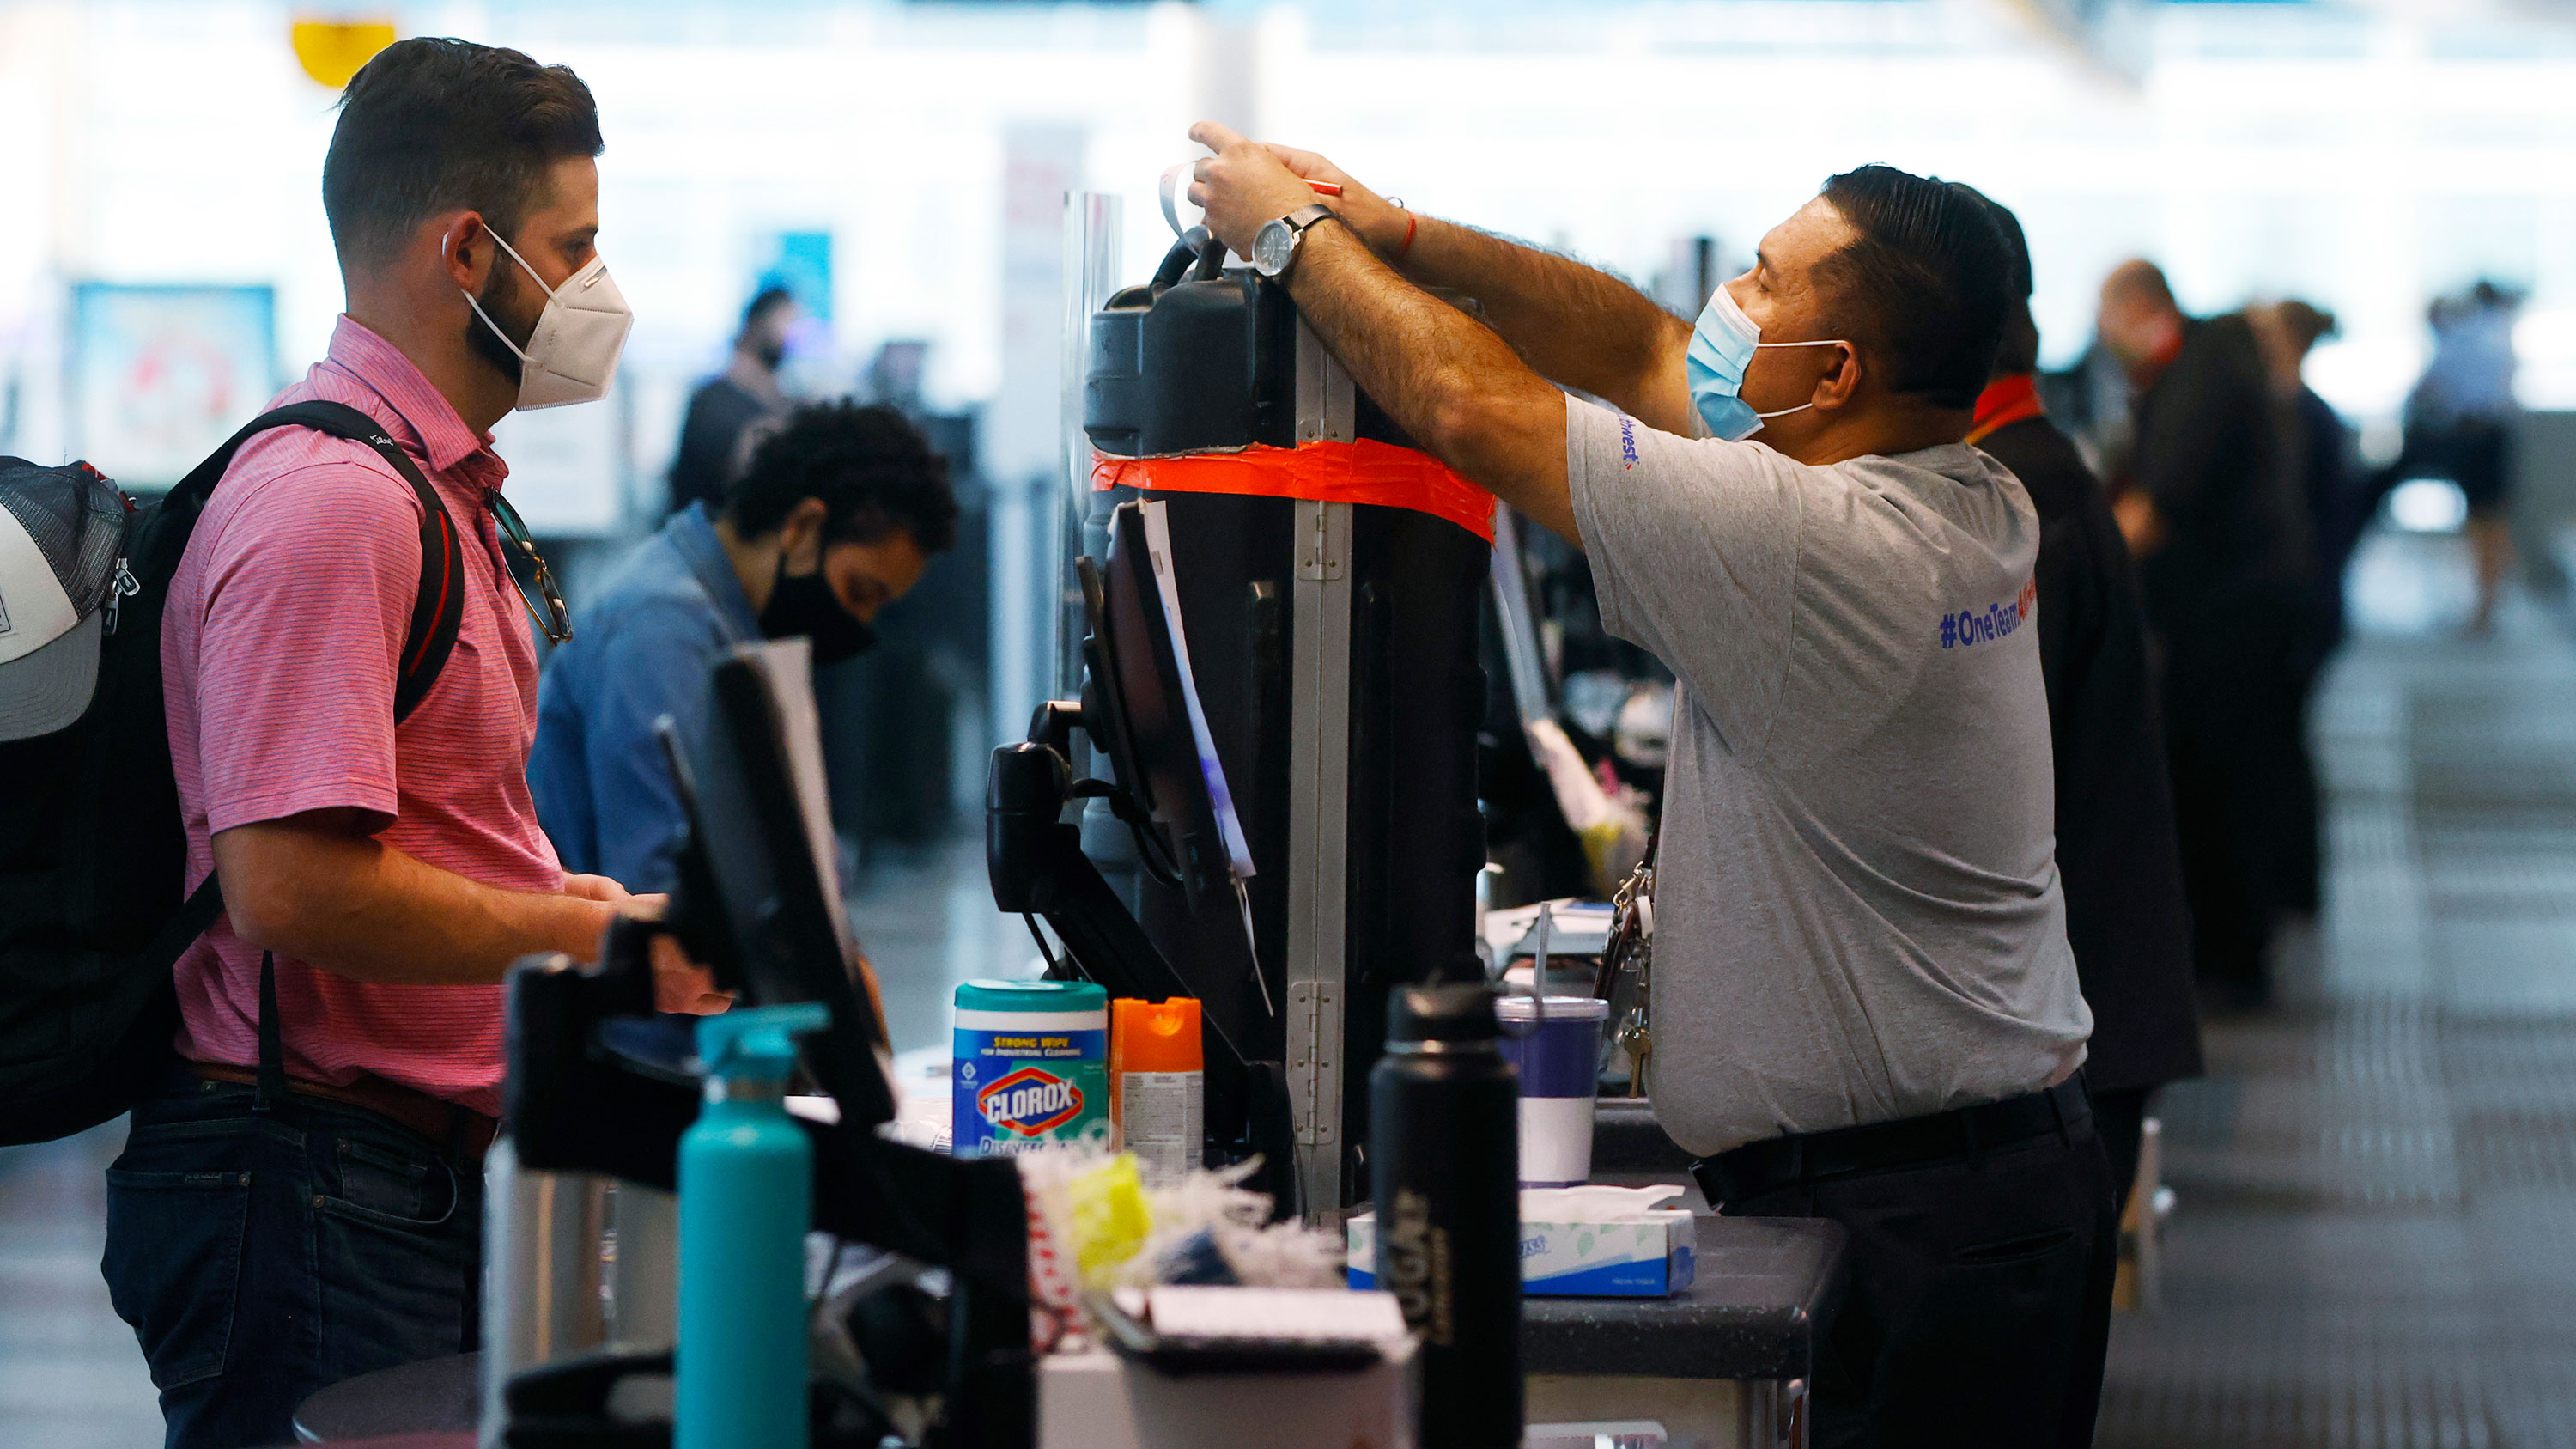 Air travel has its busiest days in months heading into Memorial Day weekend